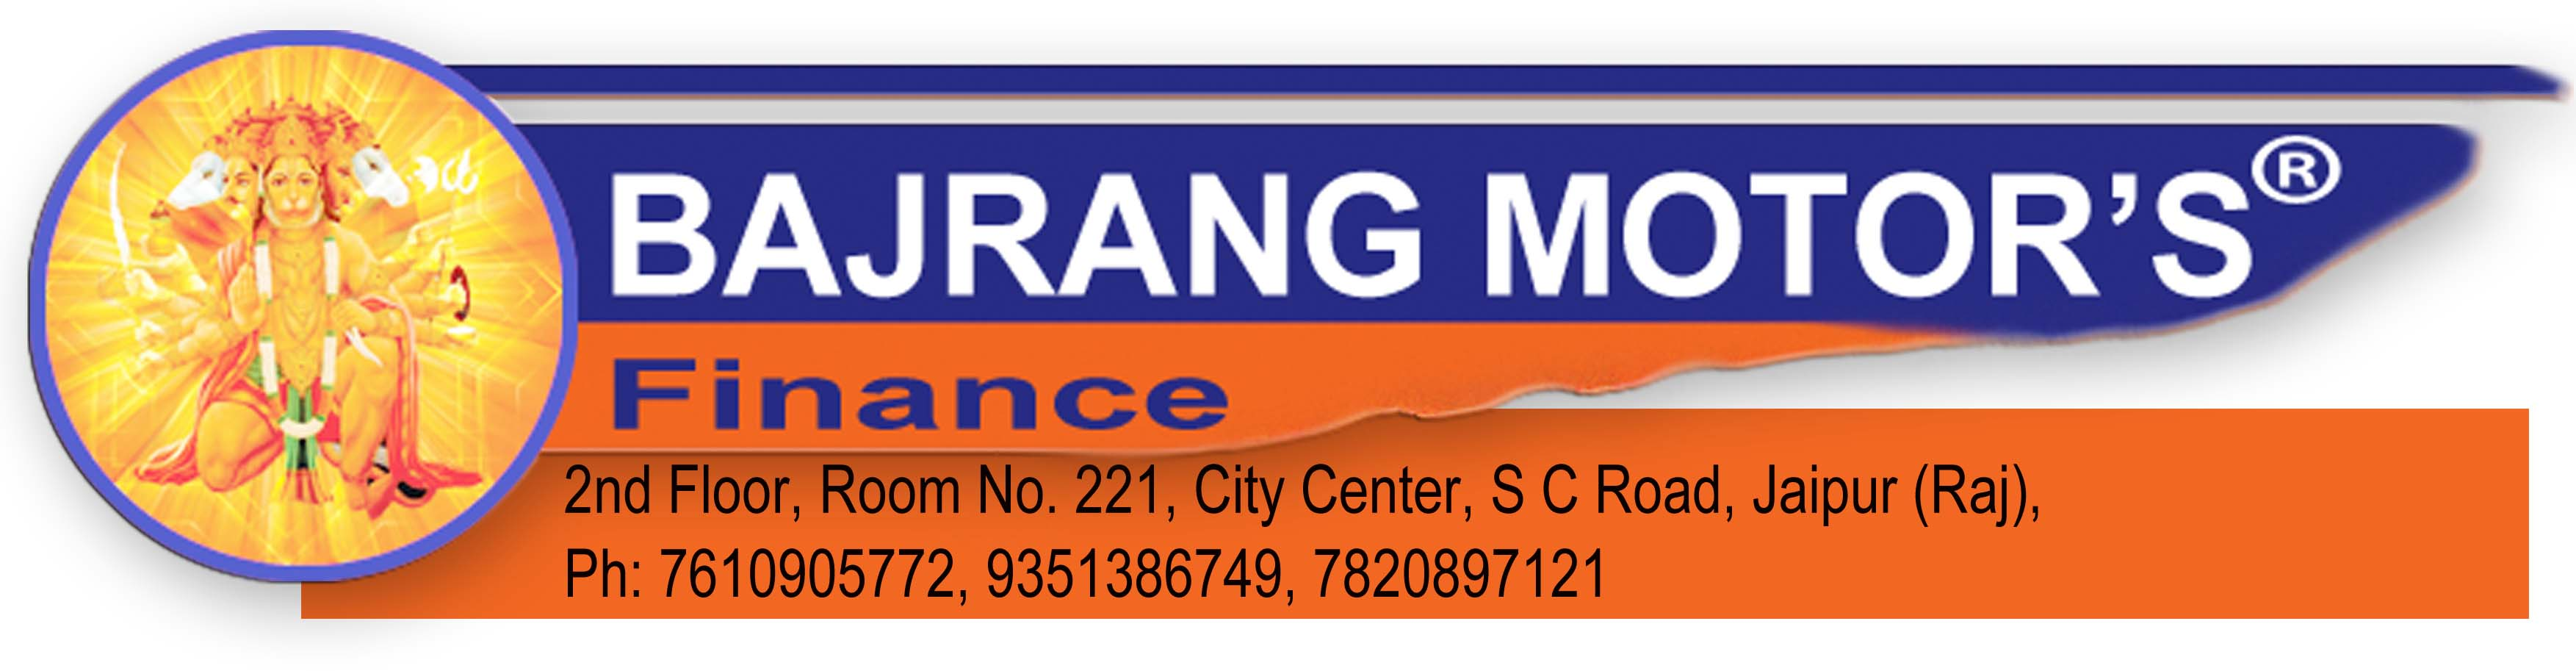 Bajrang Motors Finance